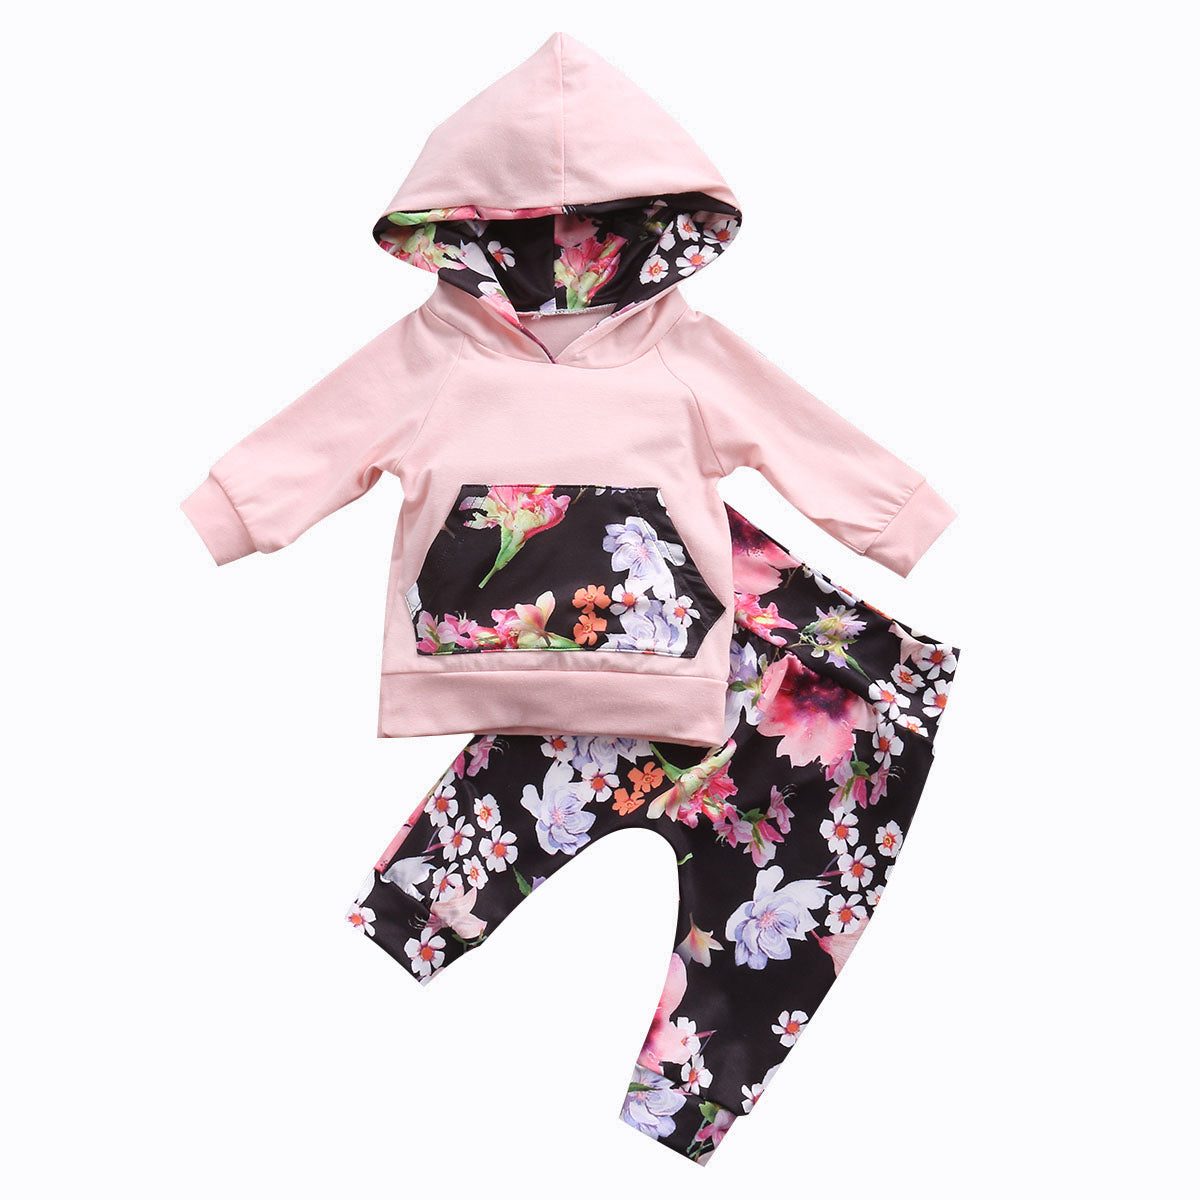 Newborn Baby Floral Hooded Clothing Set